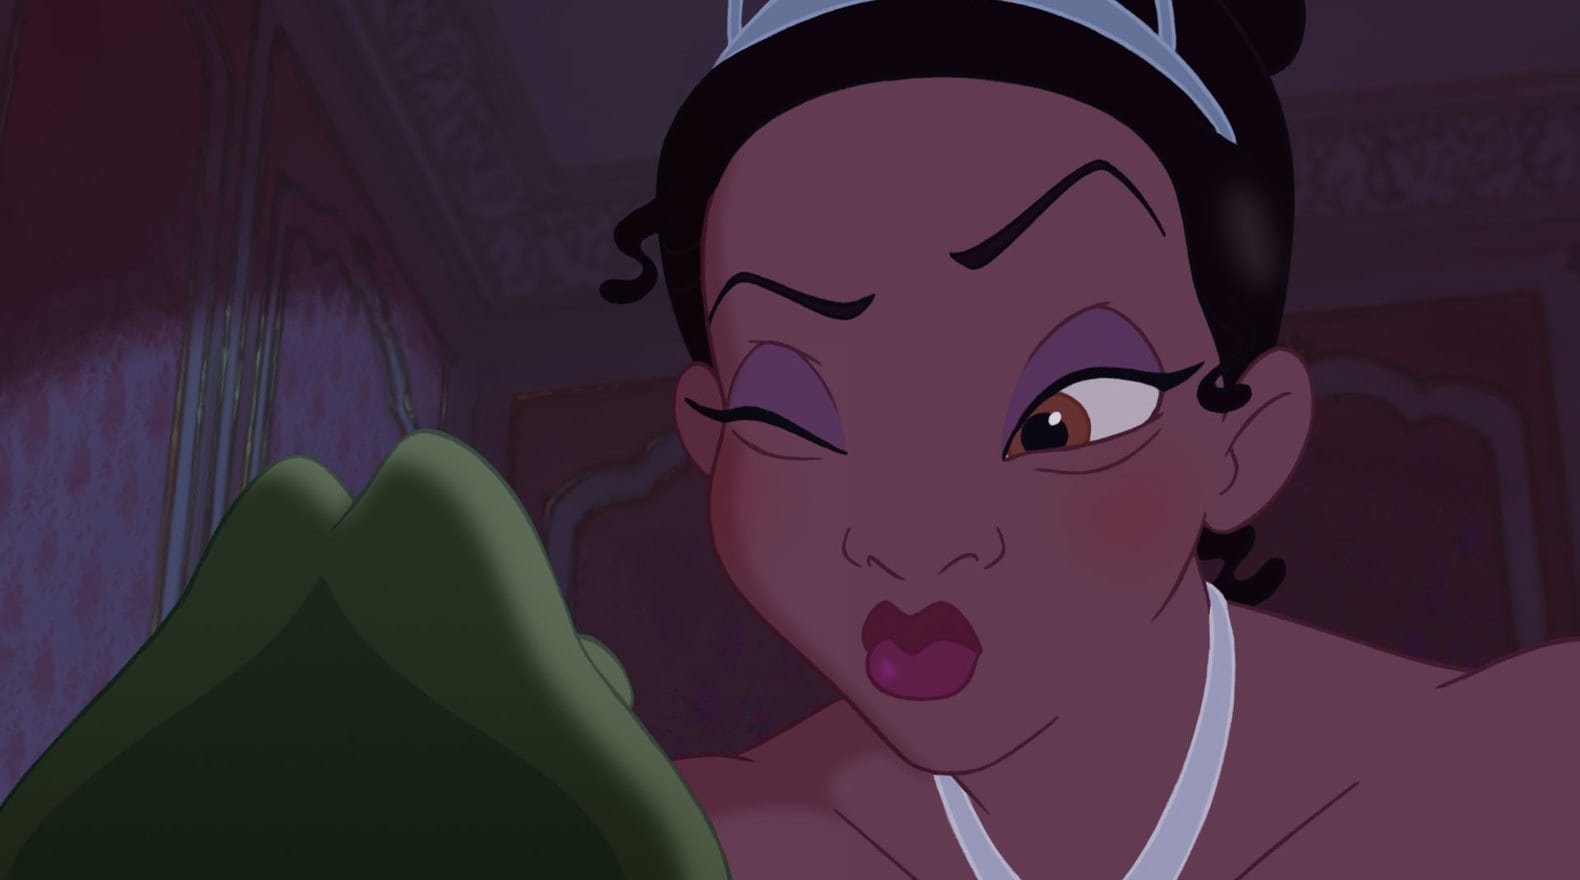 Tiana puckers her lips to kiss the frog version of Prince Nave